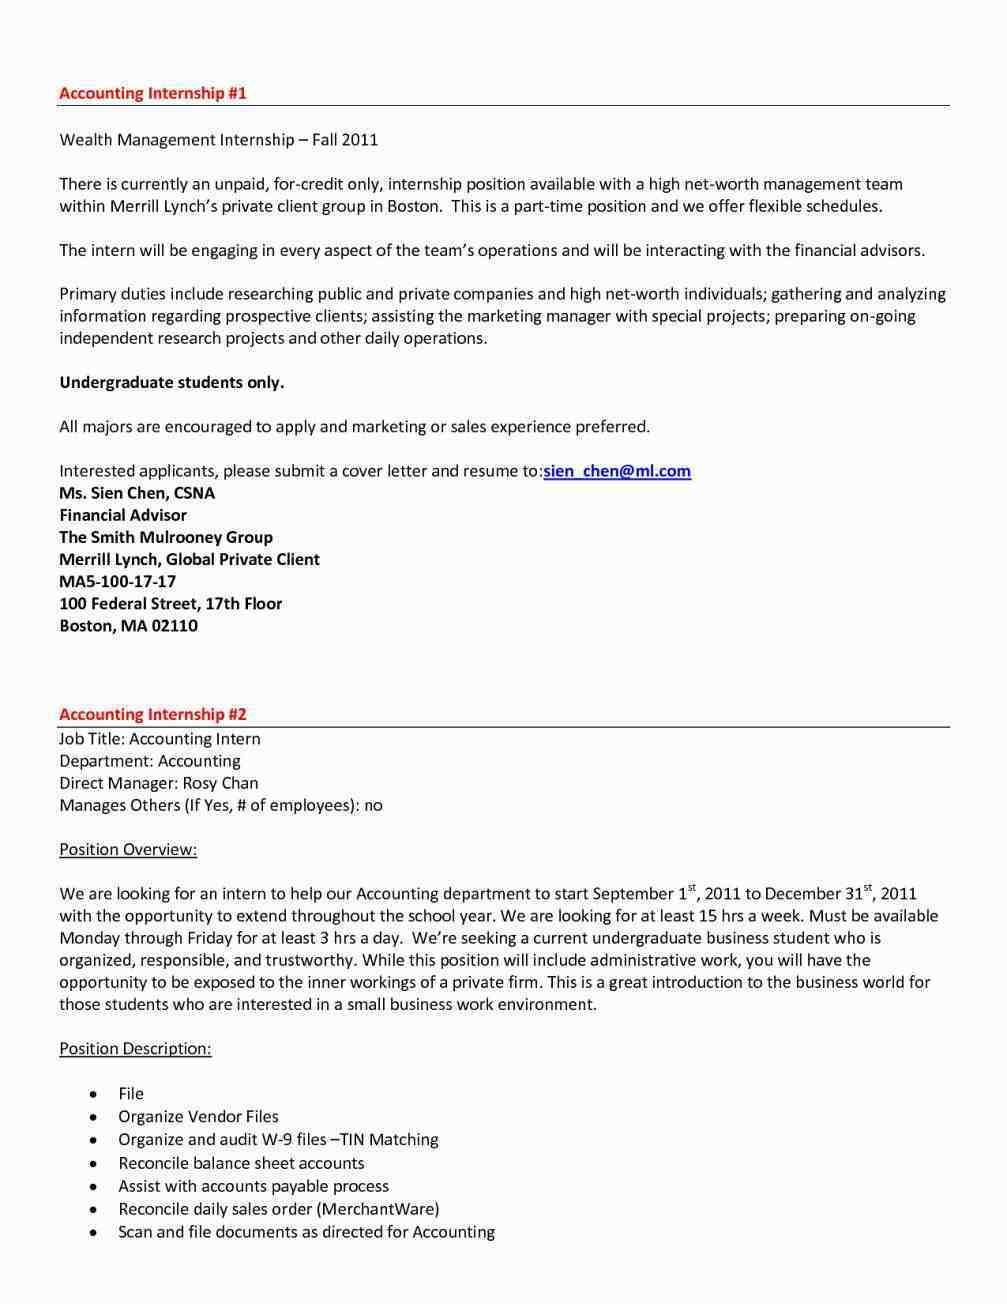 Accountant accountant cover letter document template ideas ...